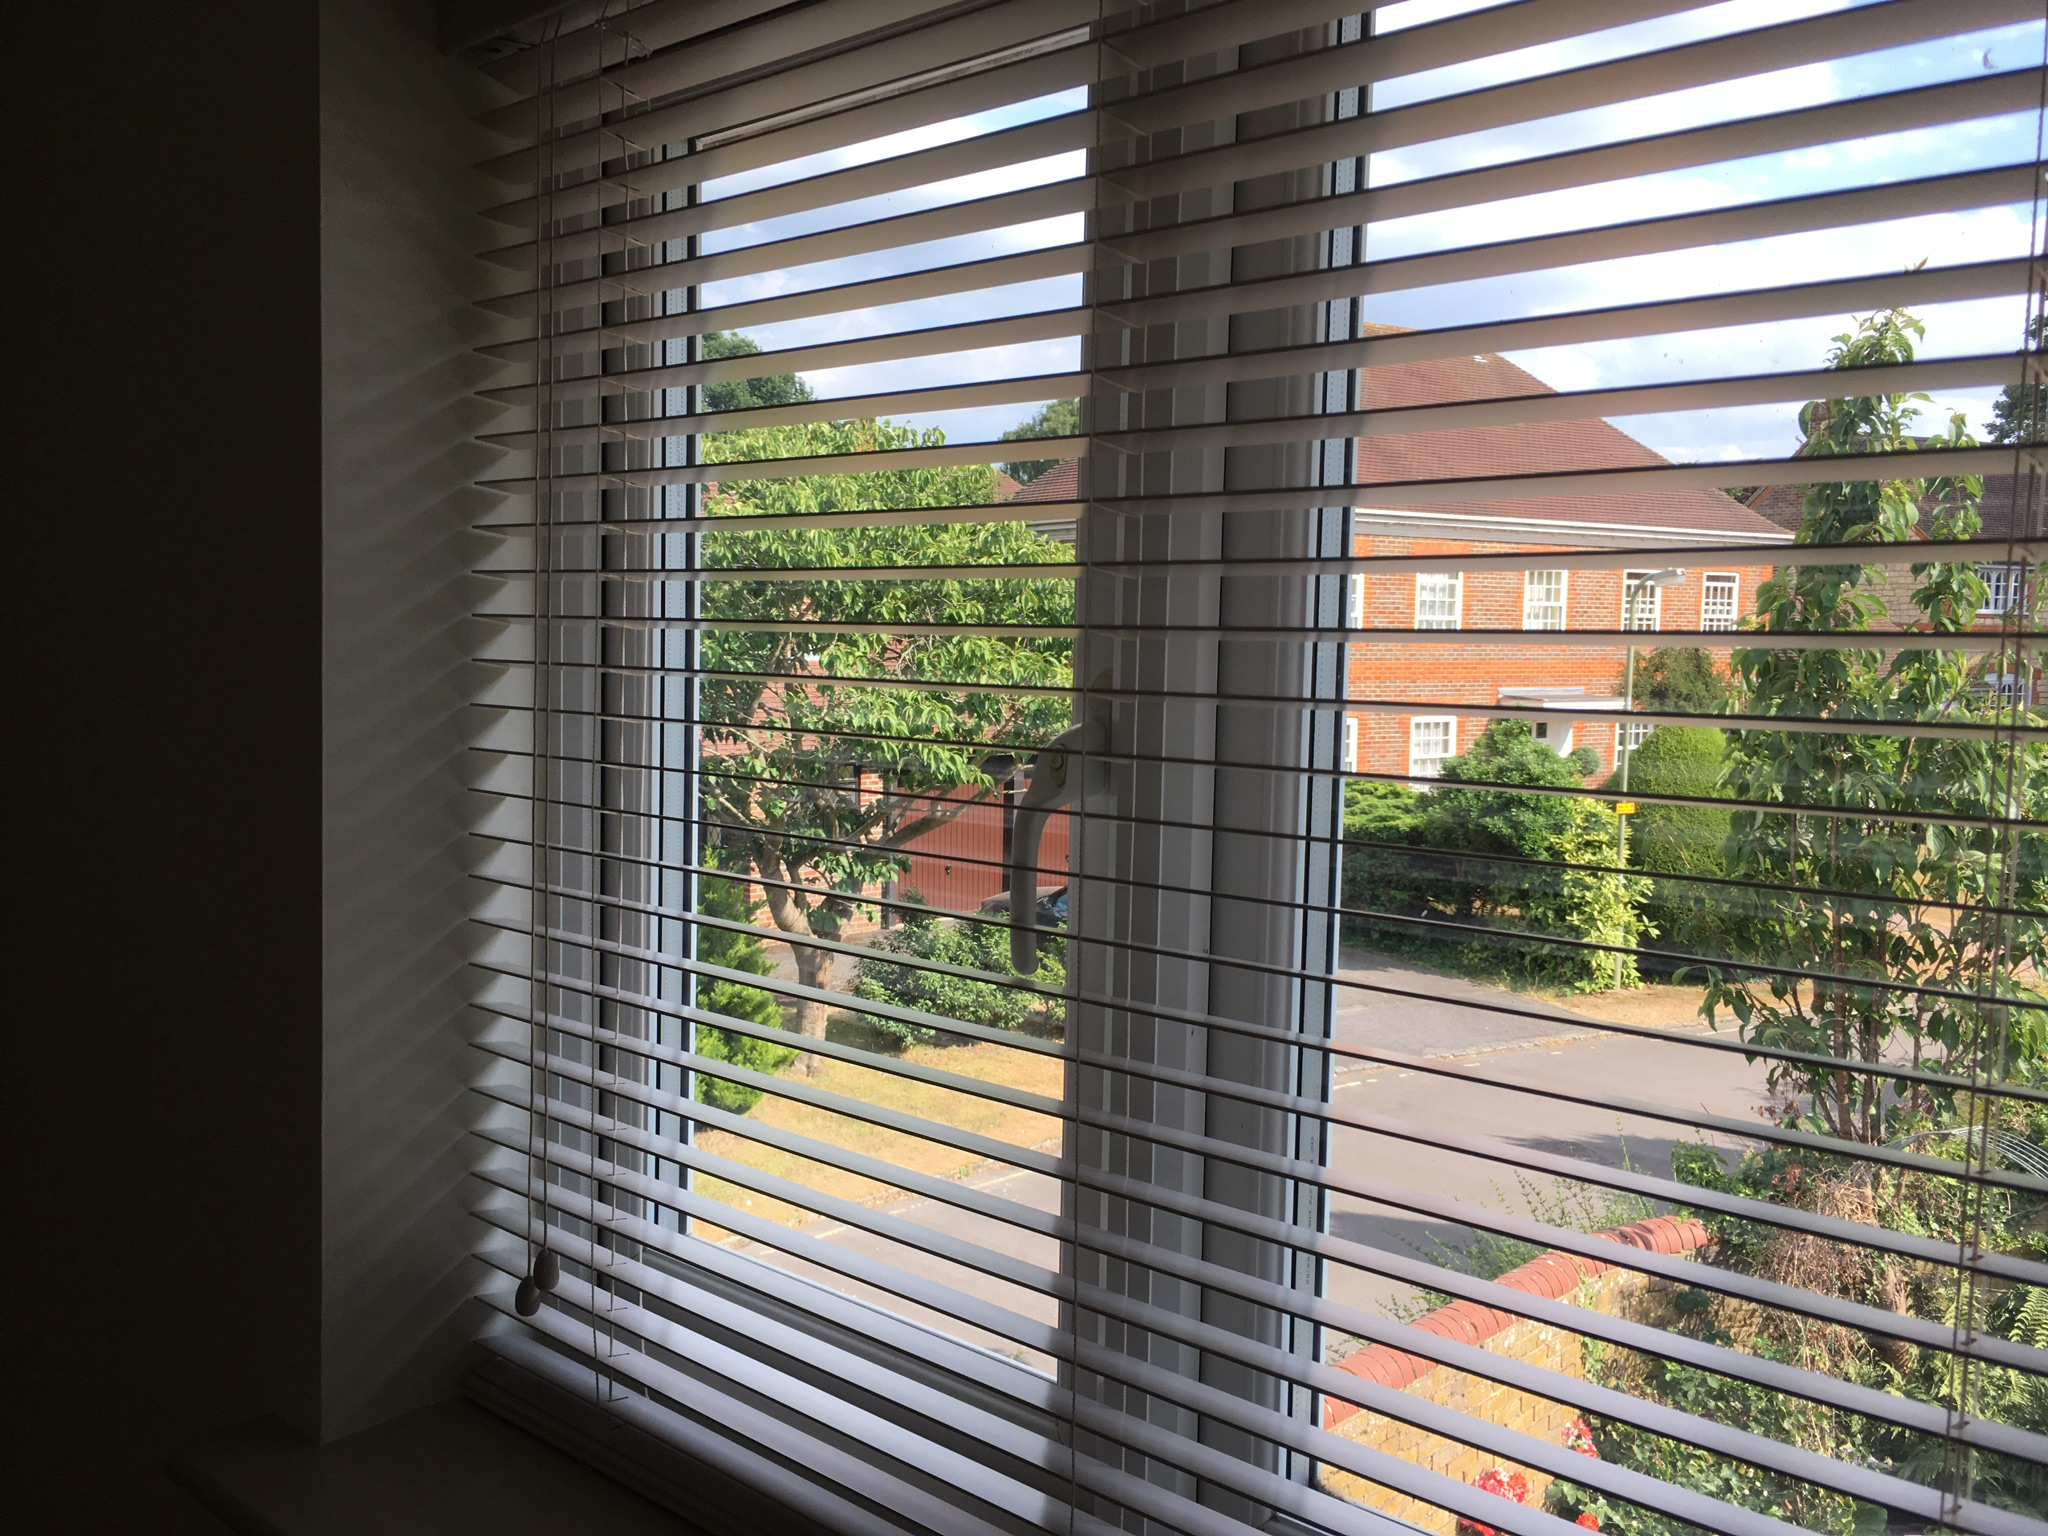 Venetian Blind, understated and practical